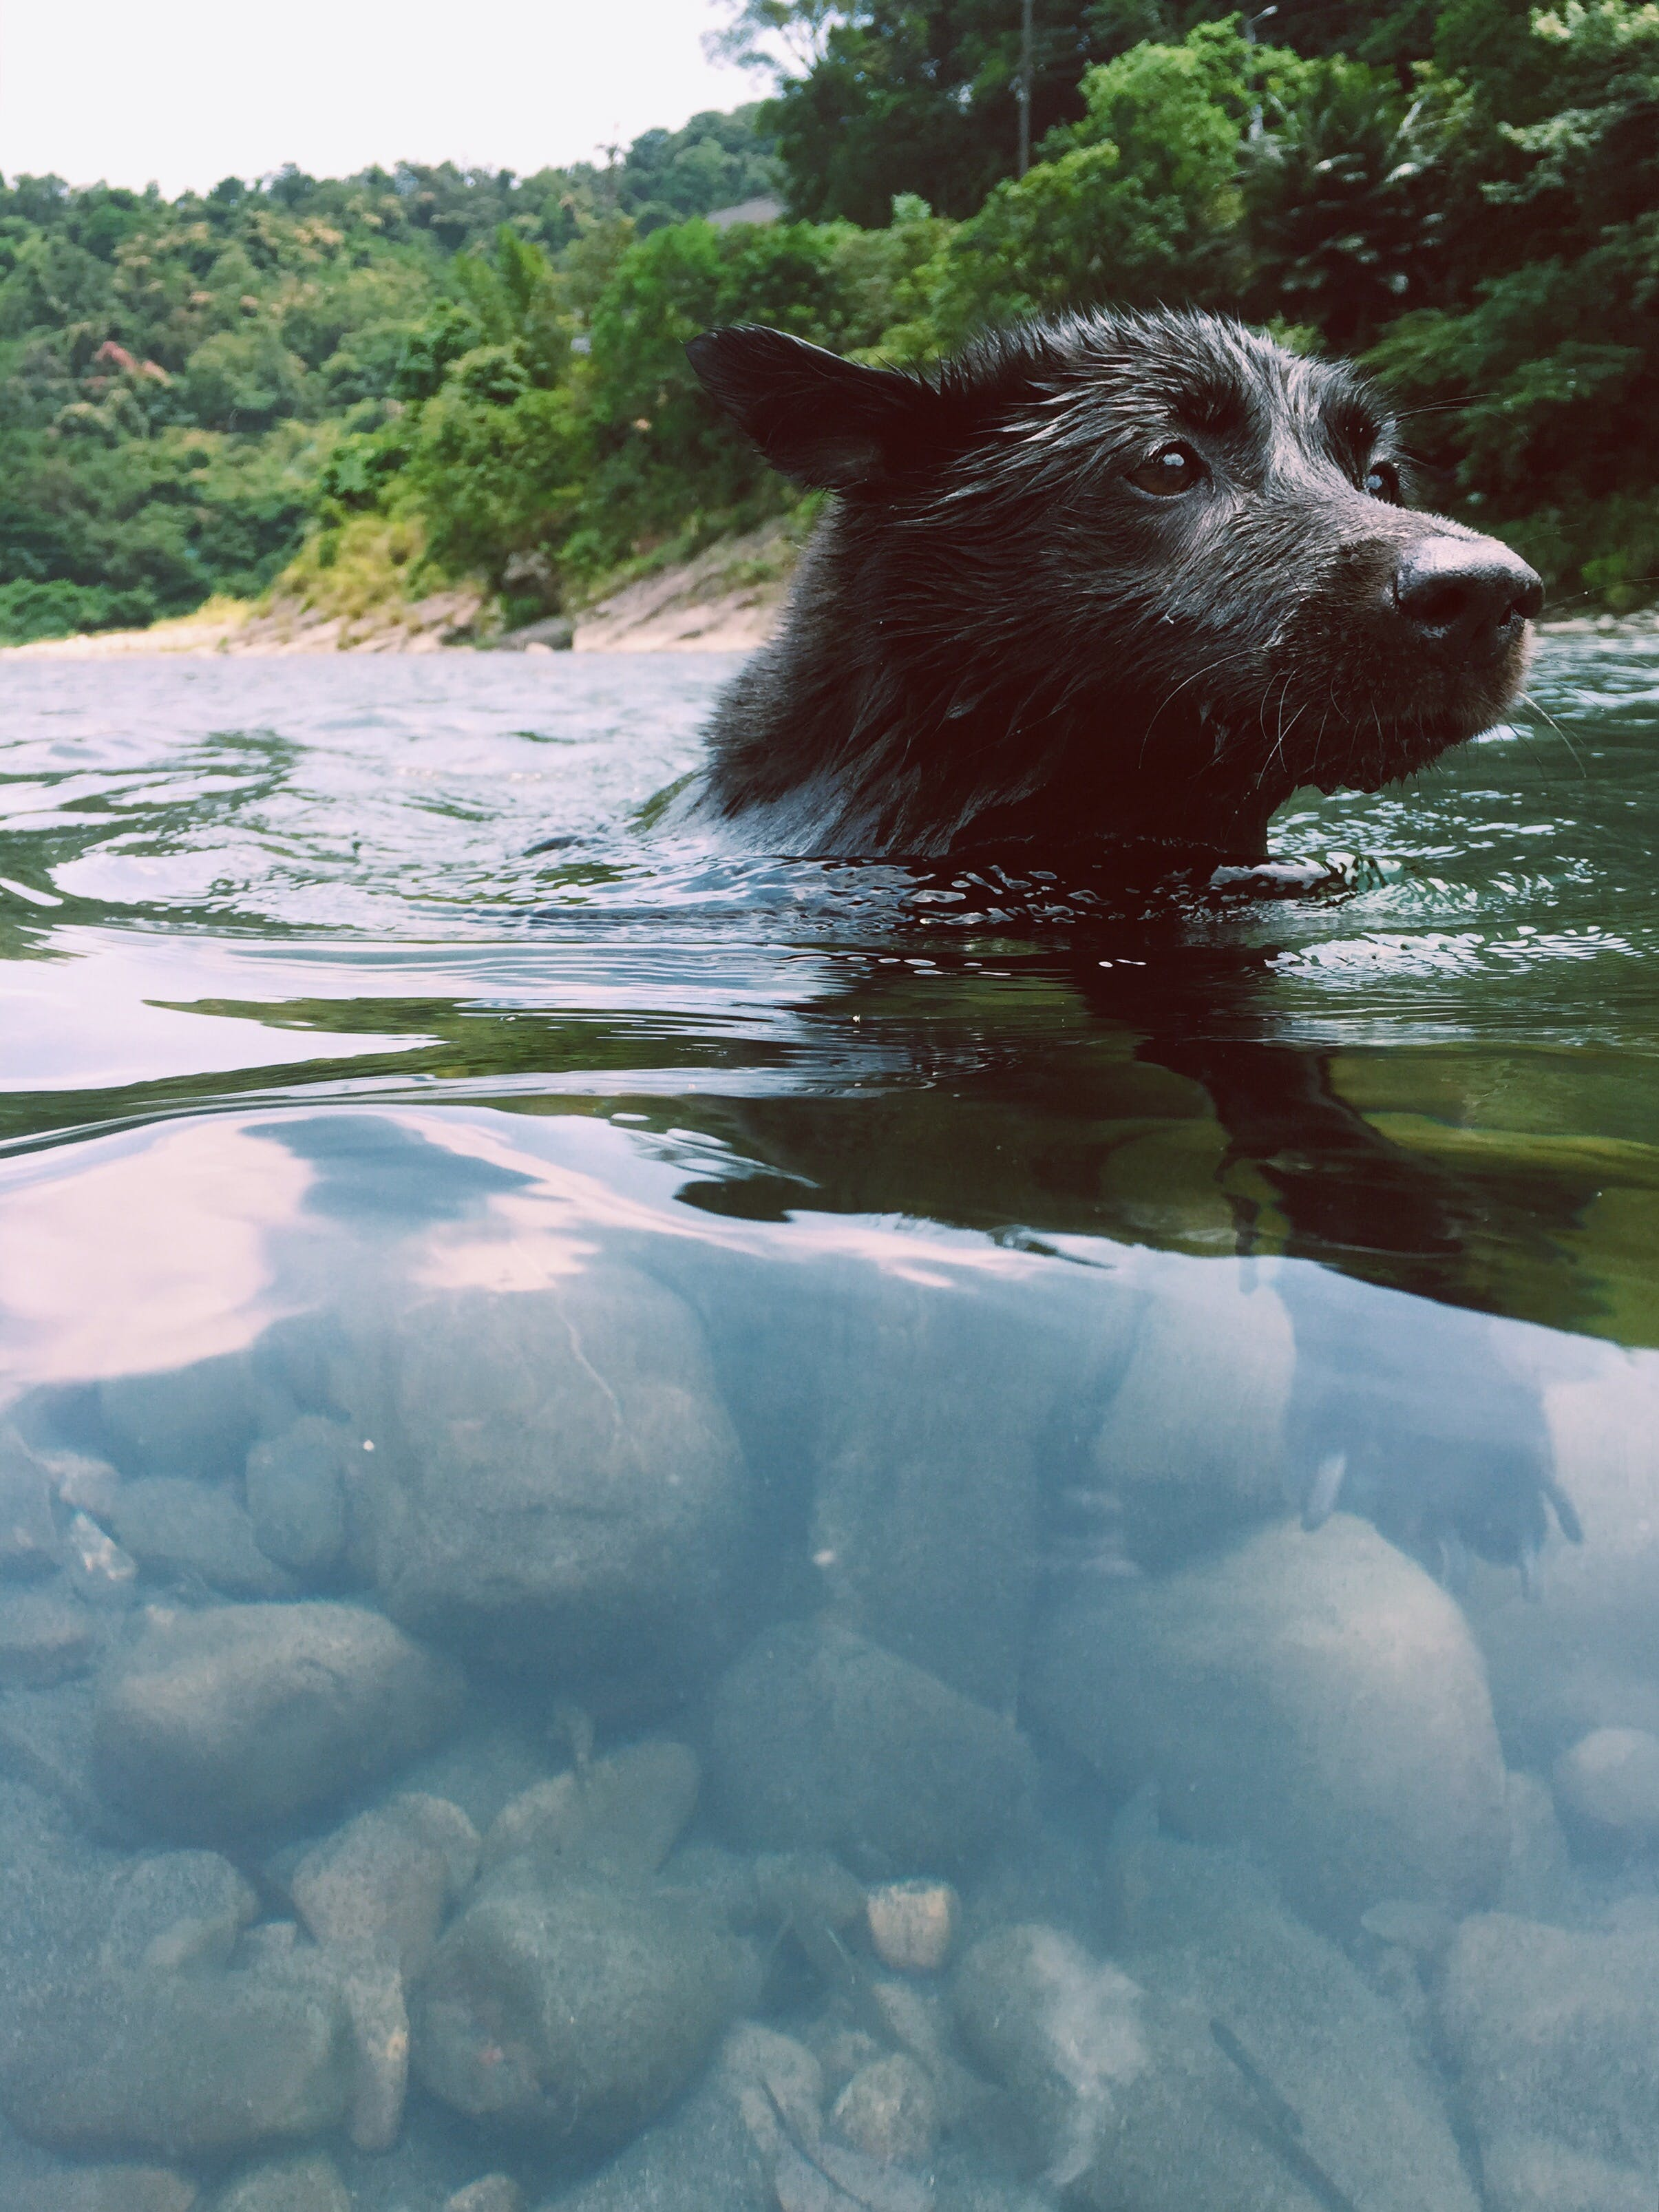 Short-coated Black Dog in Body of Water